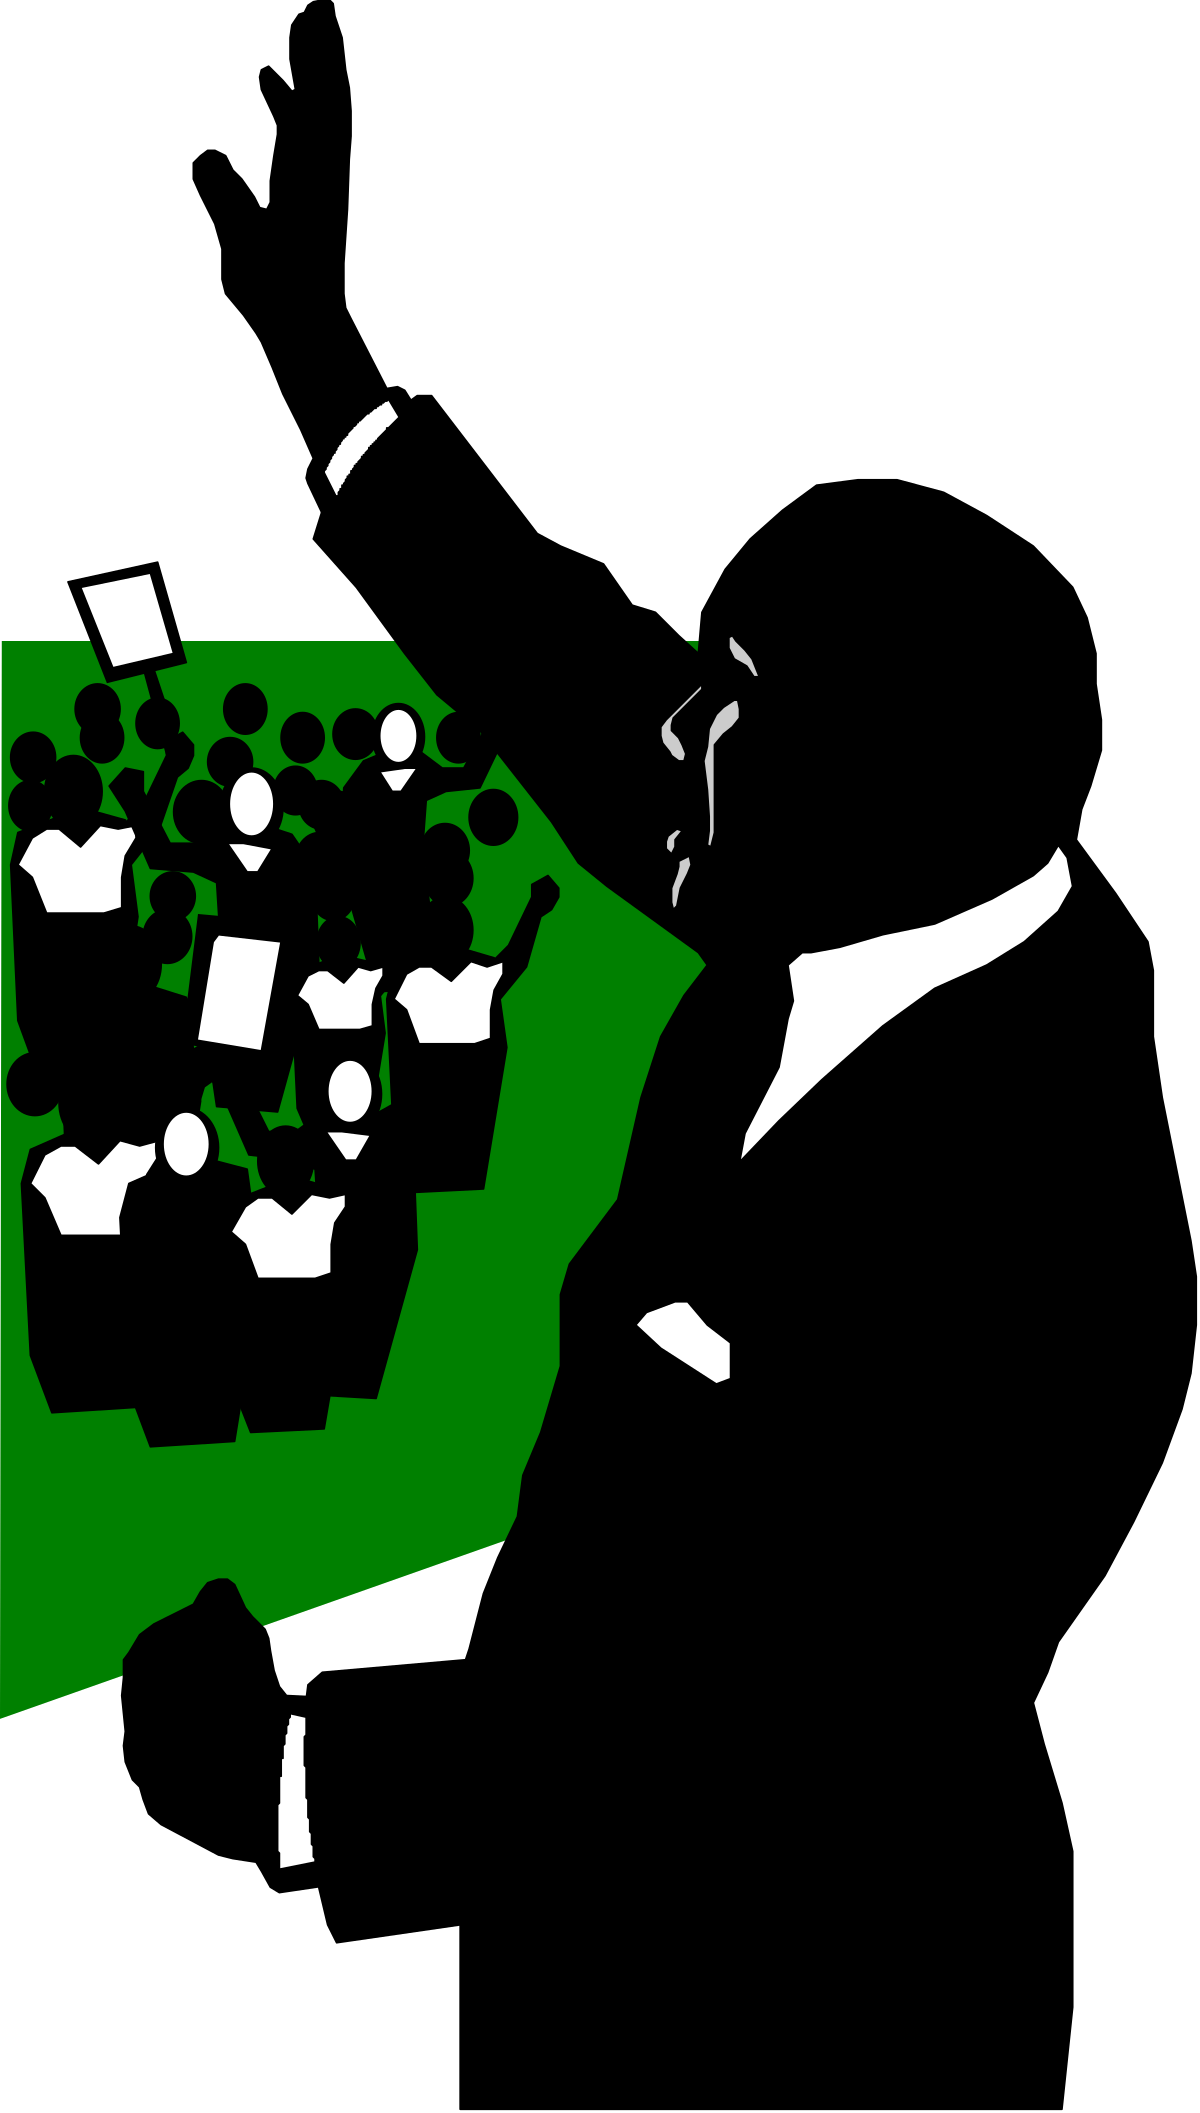 Vector Illustration Silhouette People Business Women Businessman Men Businesswoman Teamwork Business Person Manager Females Occupation Computer Graphic Symbol Isolated Back Lit The Human Body Black Color Success Communication Meeting Group Of People Working Outline Males Suit Togetherness